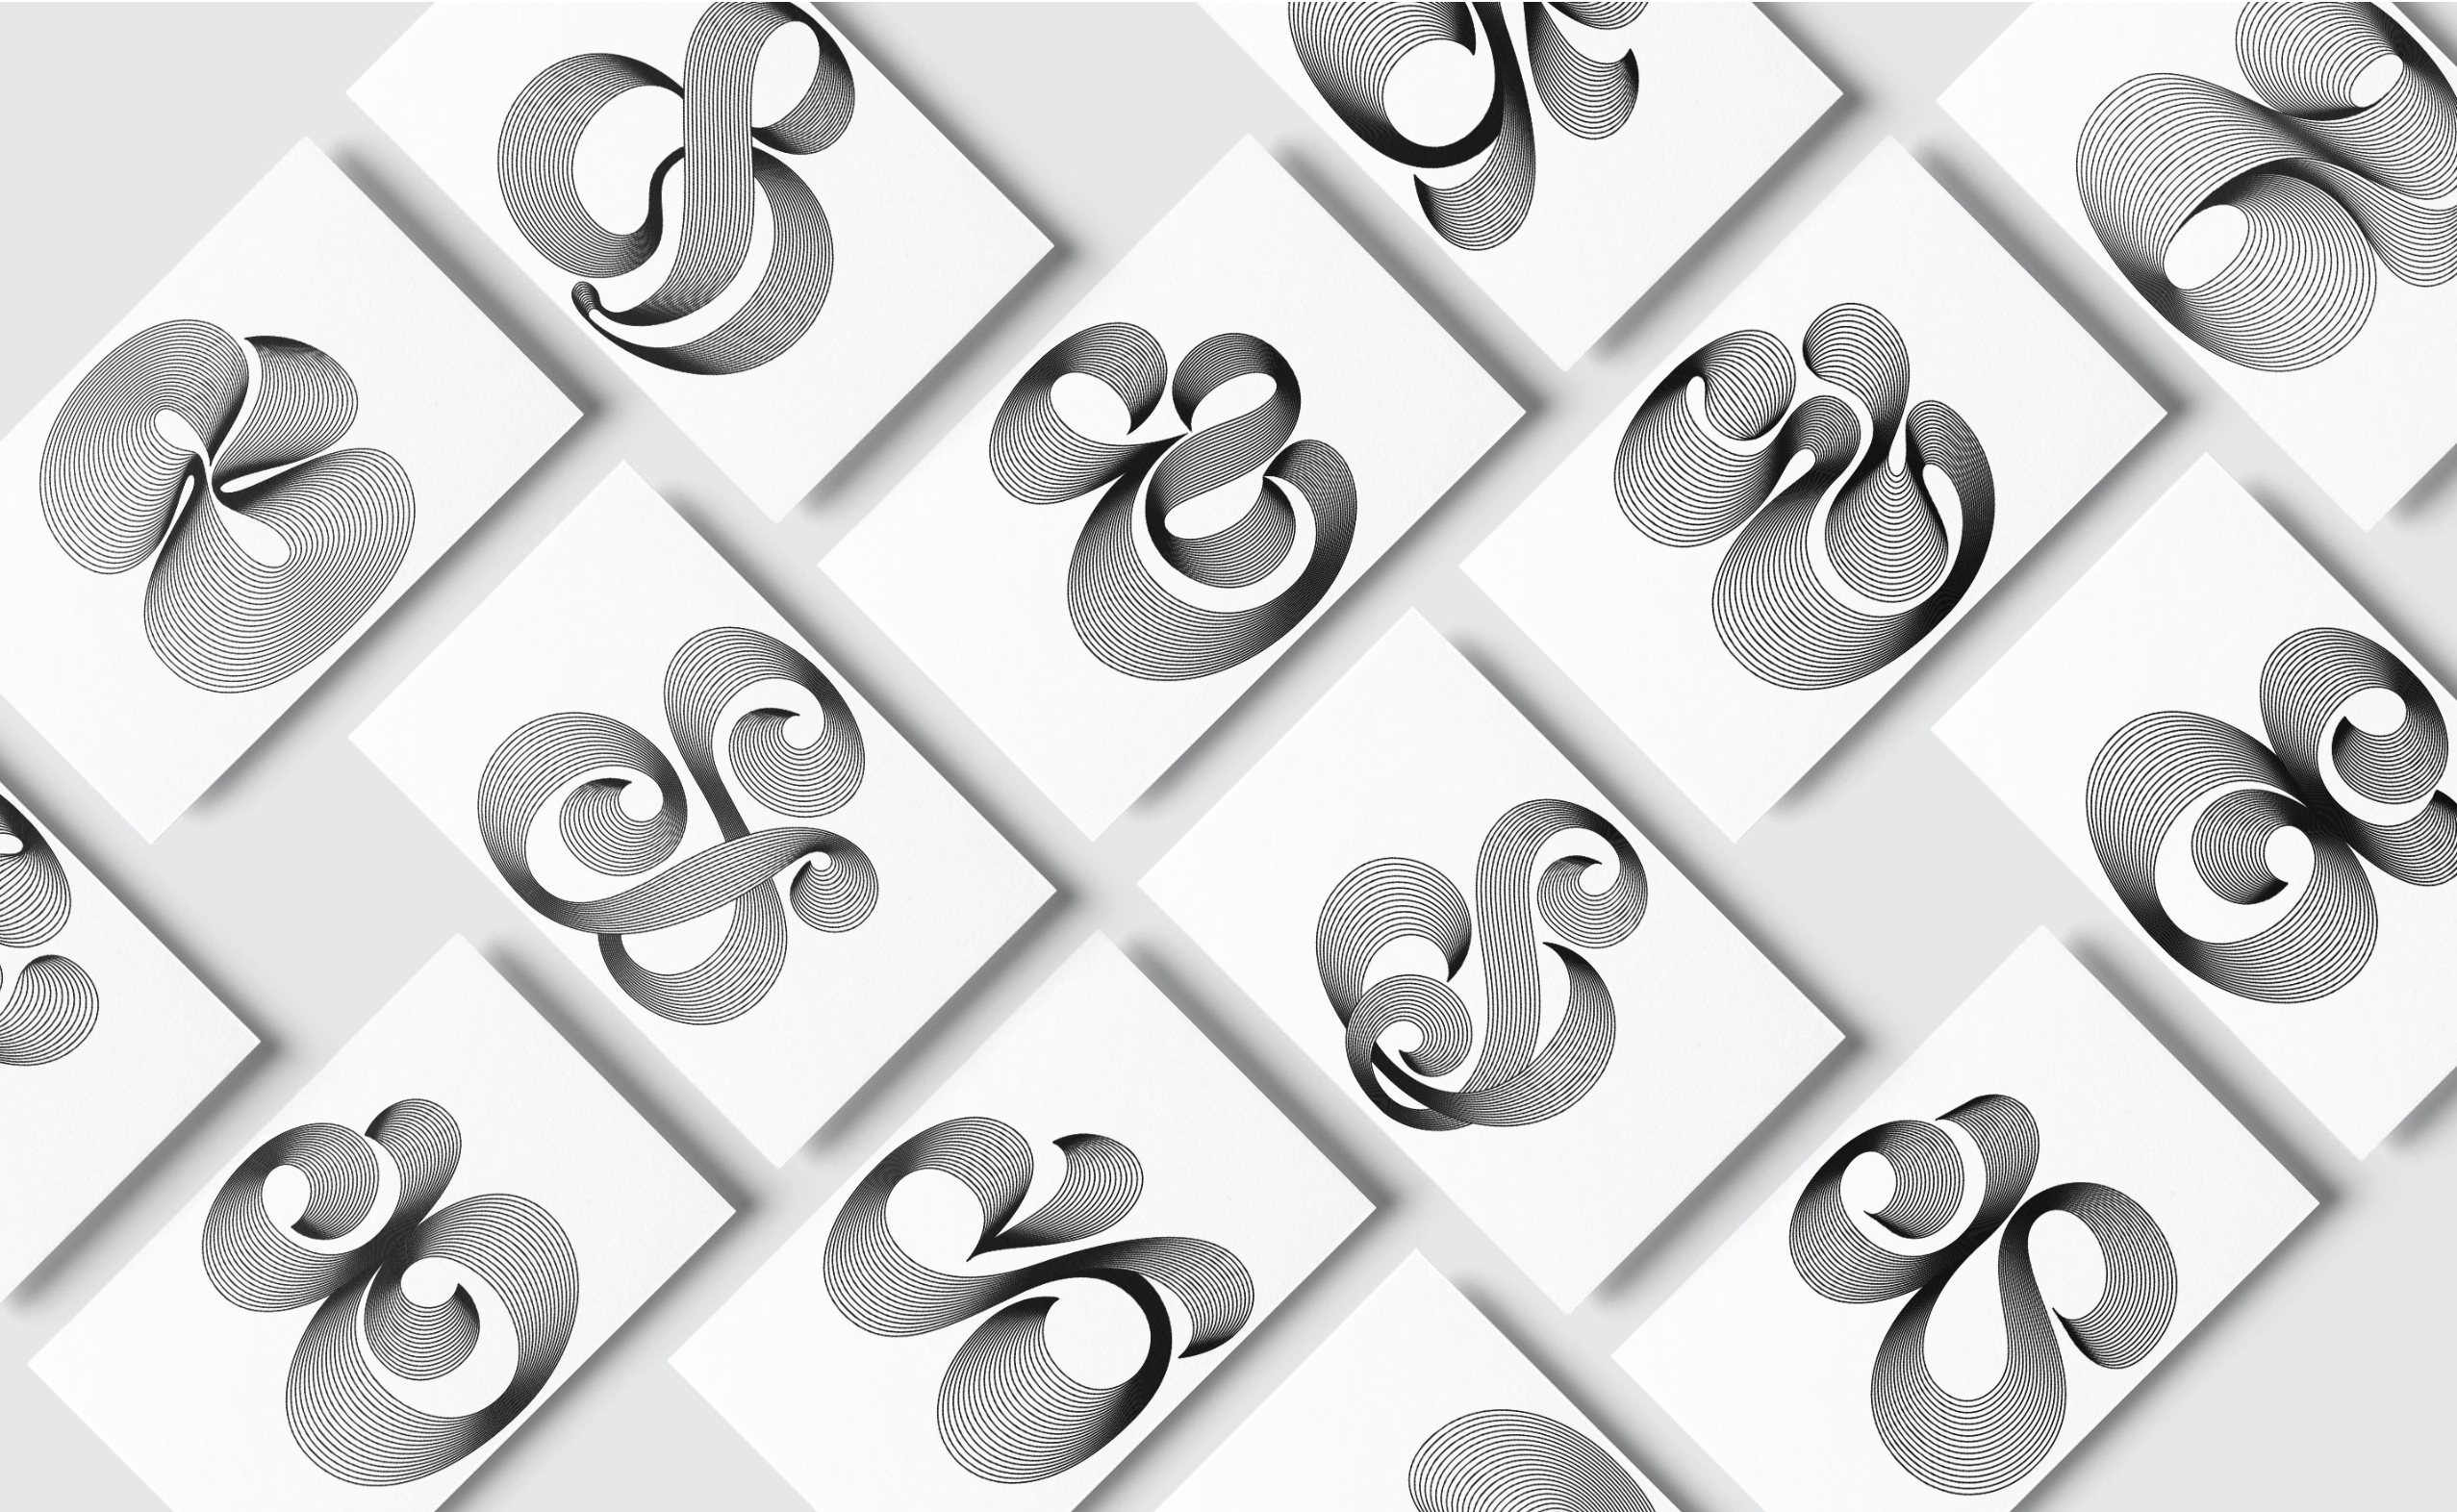 Bianca Dumitrascu's gorgeous Ampersand Series is available in limited-edition cards and prints from her online shop.